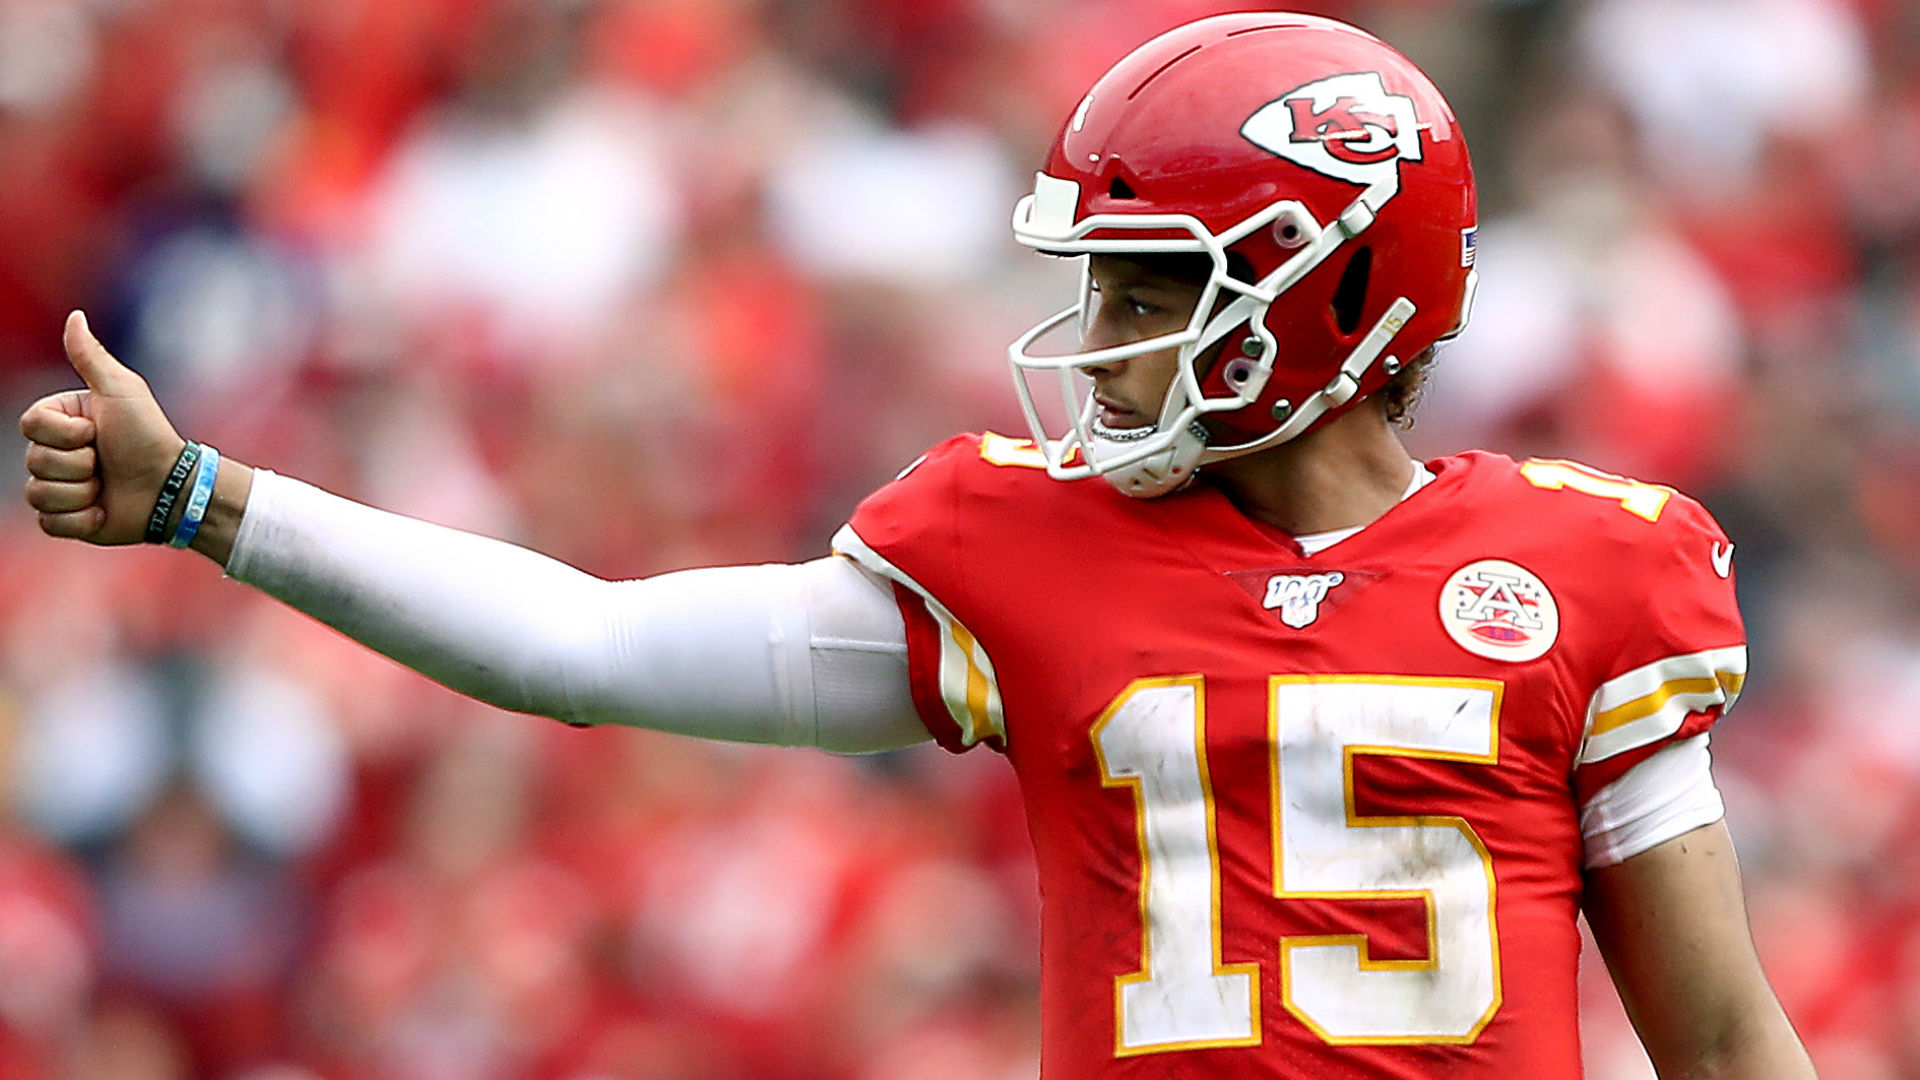 Chiefs' Patrick Mahomes, improved from MVP form, set up for best passing season in NFL history